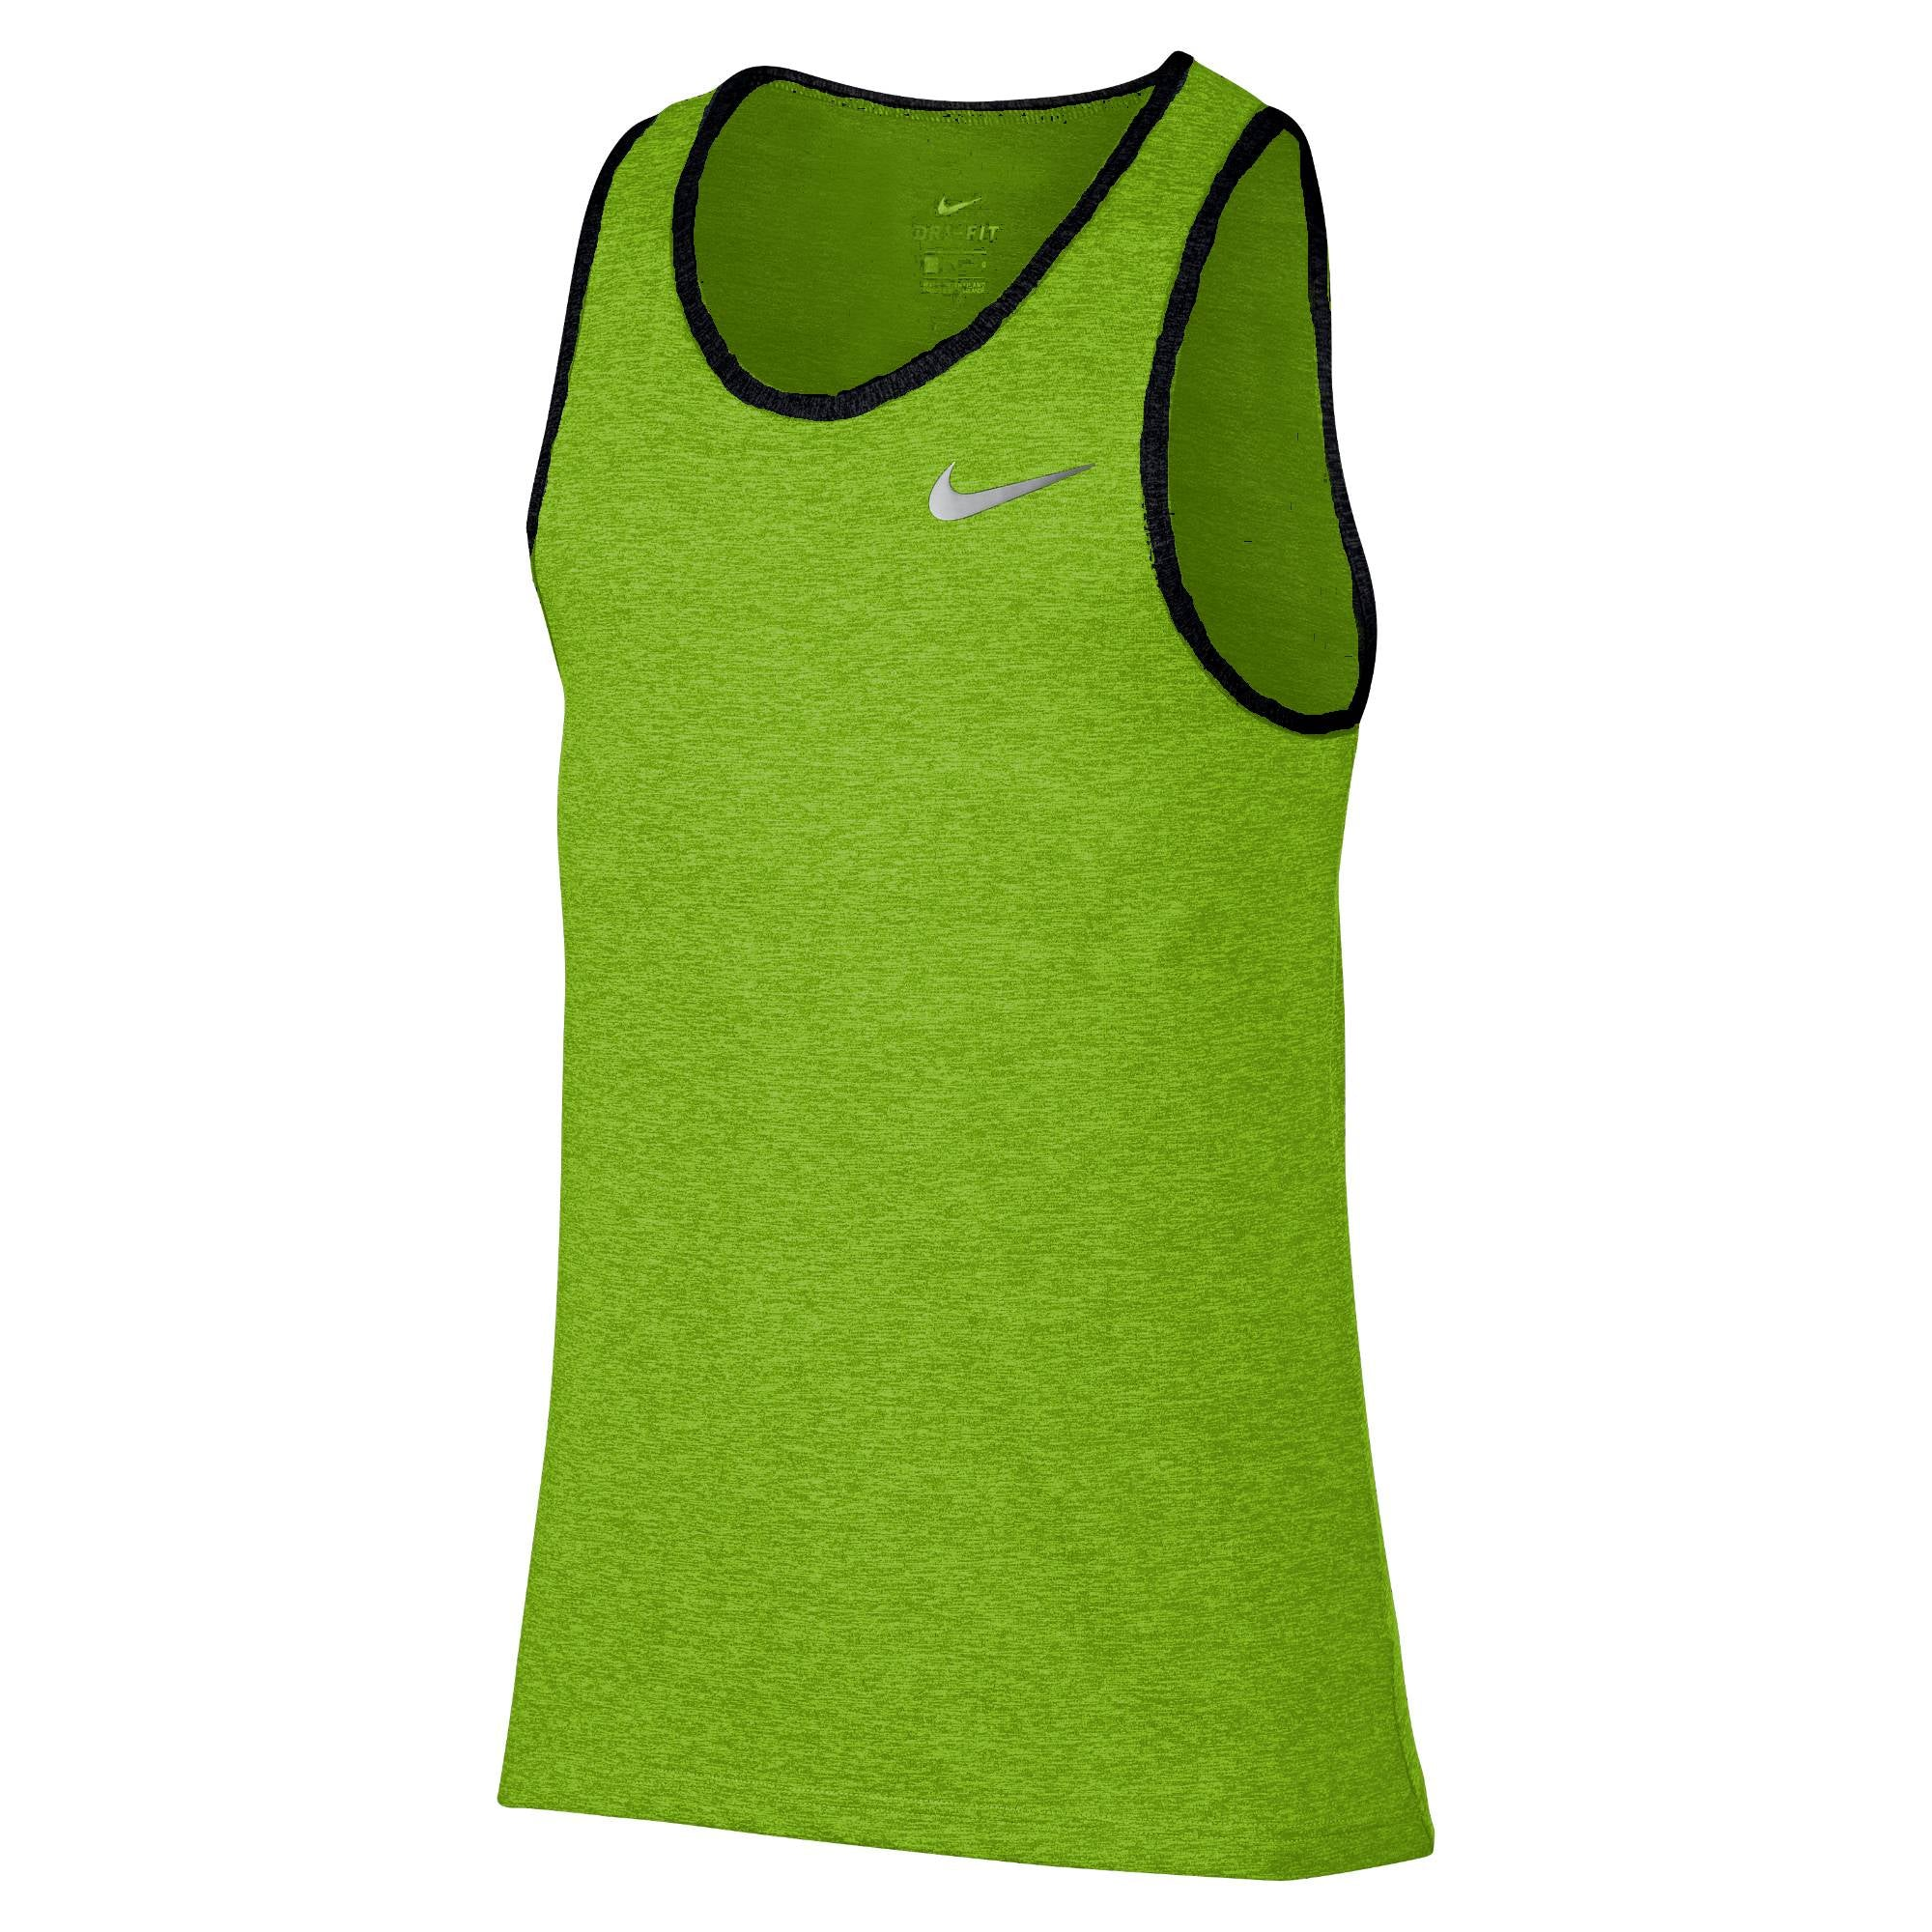 Nike Basketball Hyper Elite Knit Basketball Sleeveless Top NK-822874-313